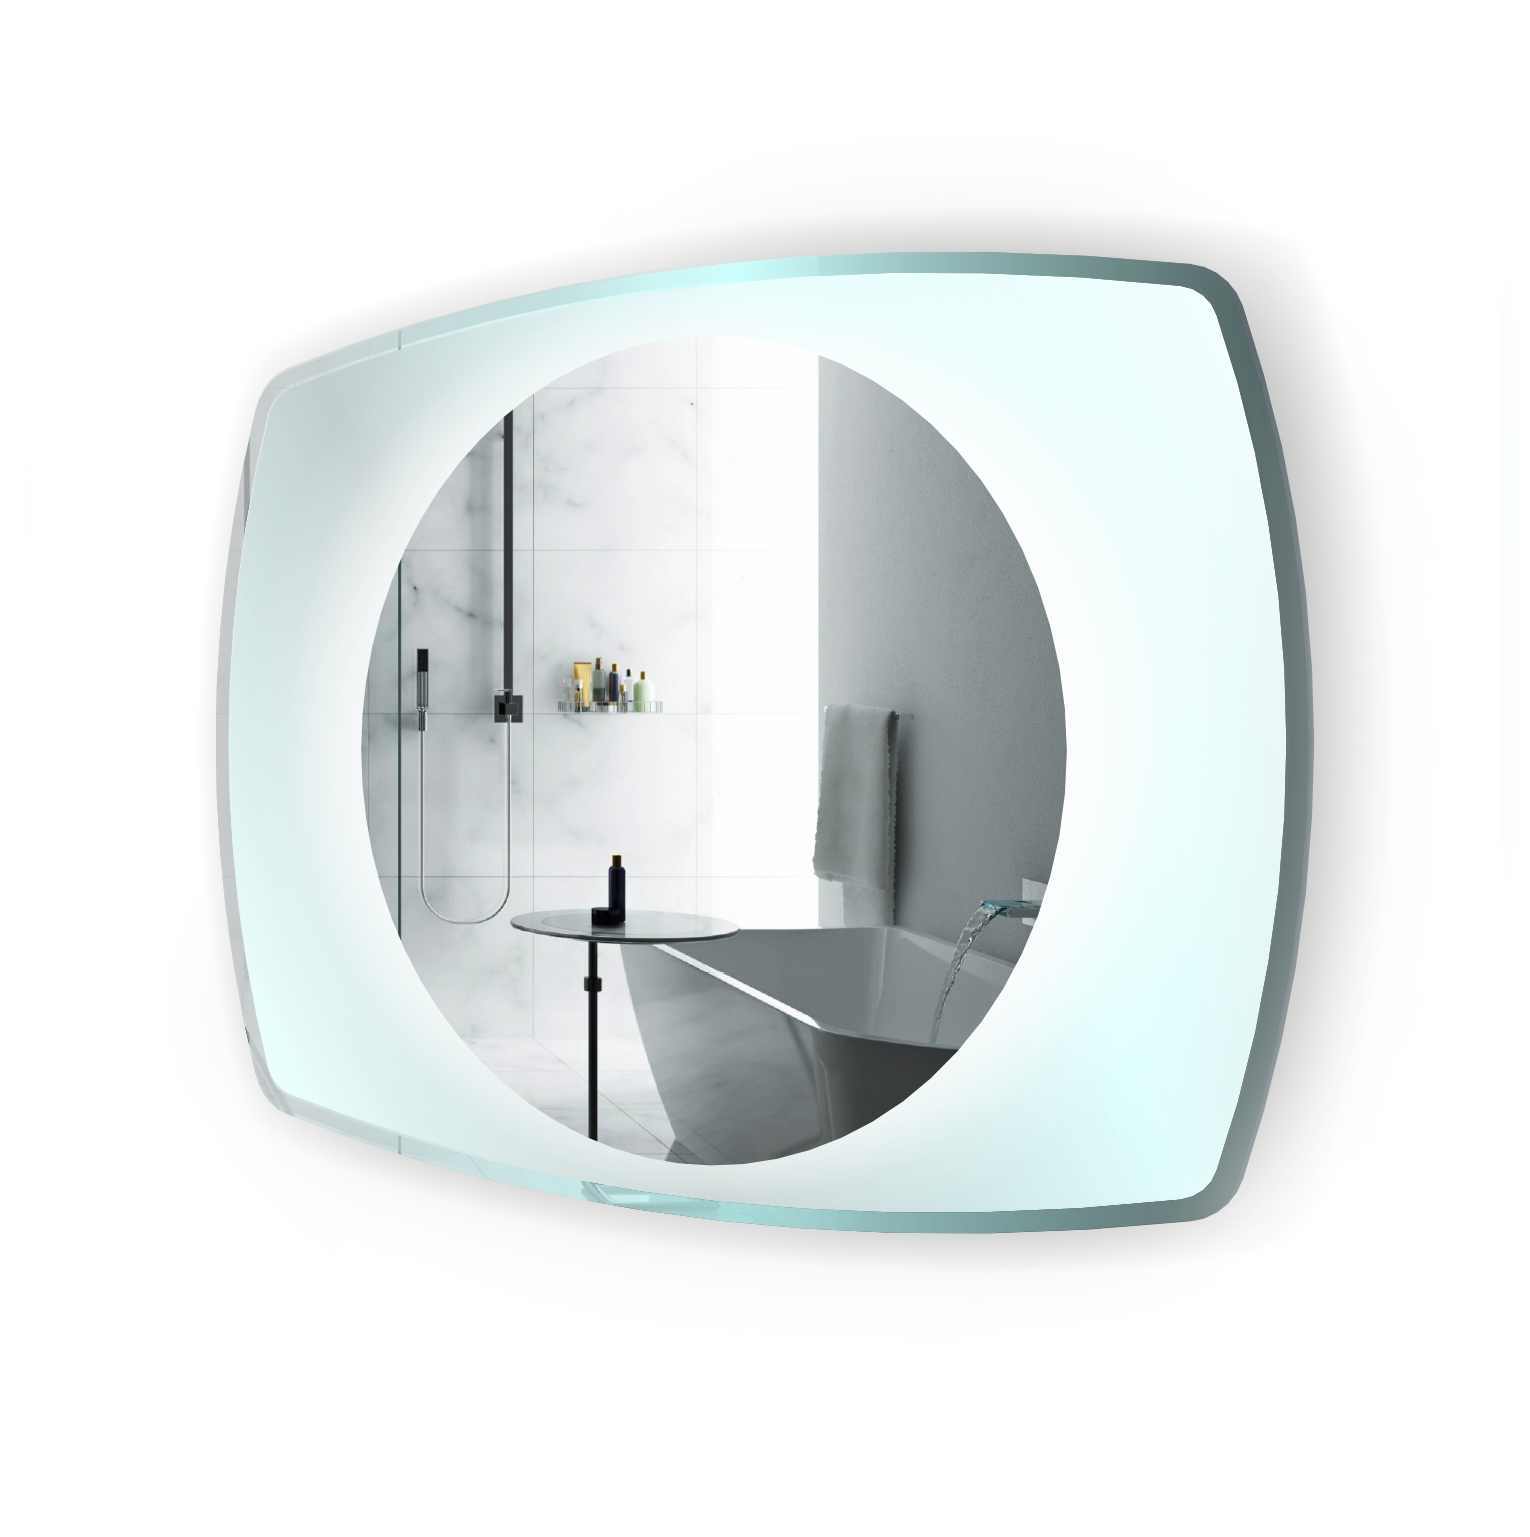 Vetro  32″ x 24″ LED Bathroom Mirror | Glass Frame Lighted Mirror